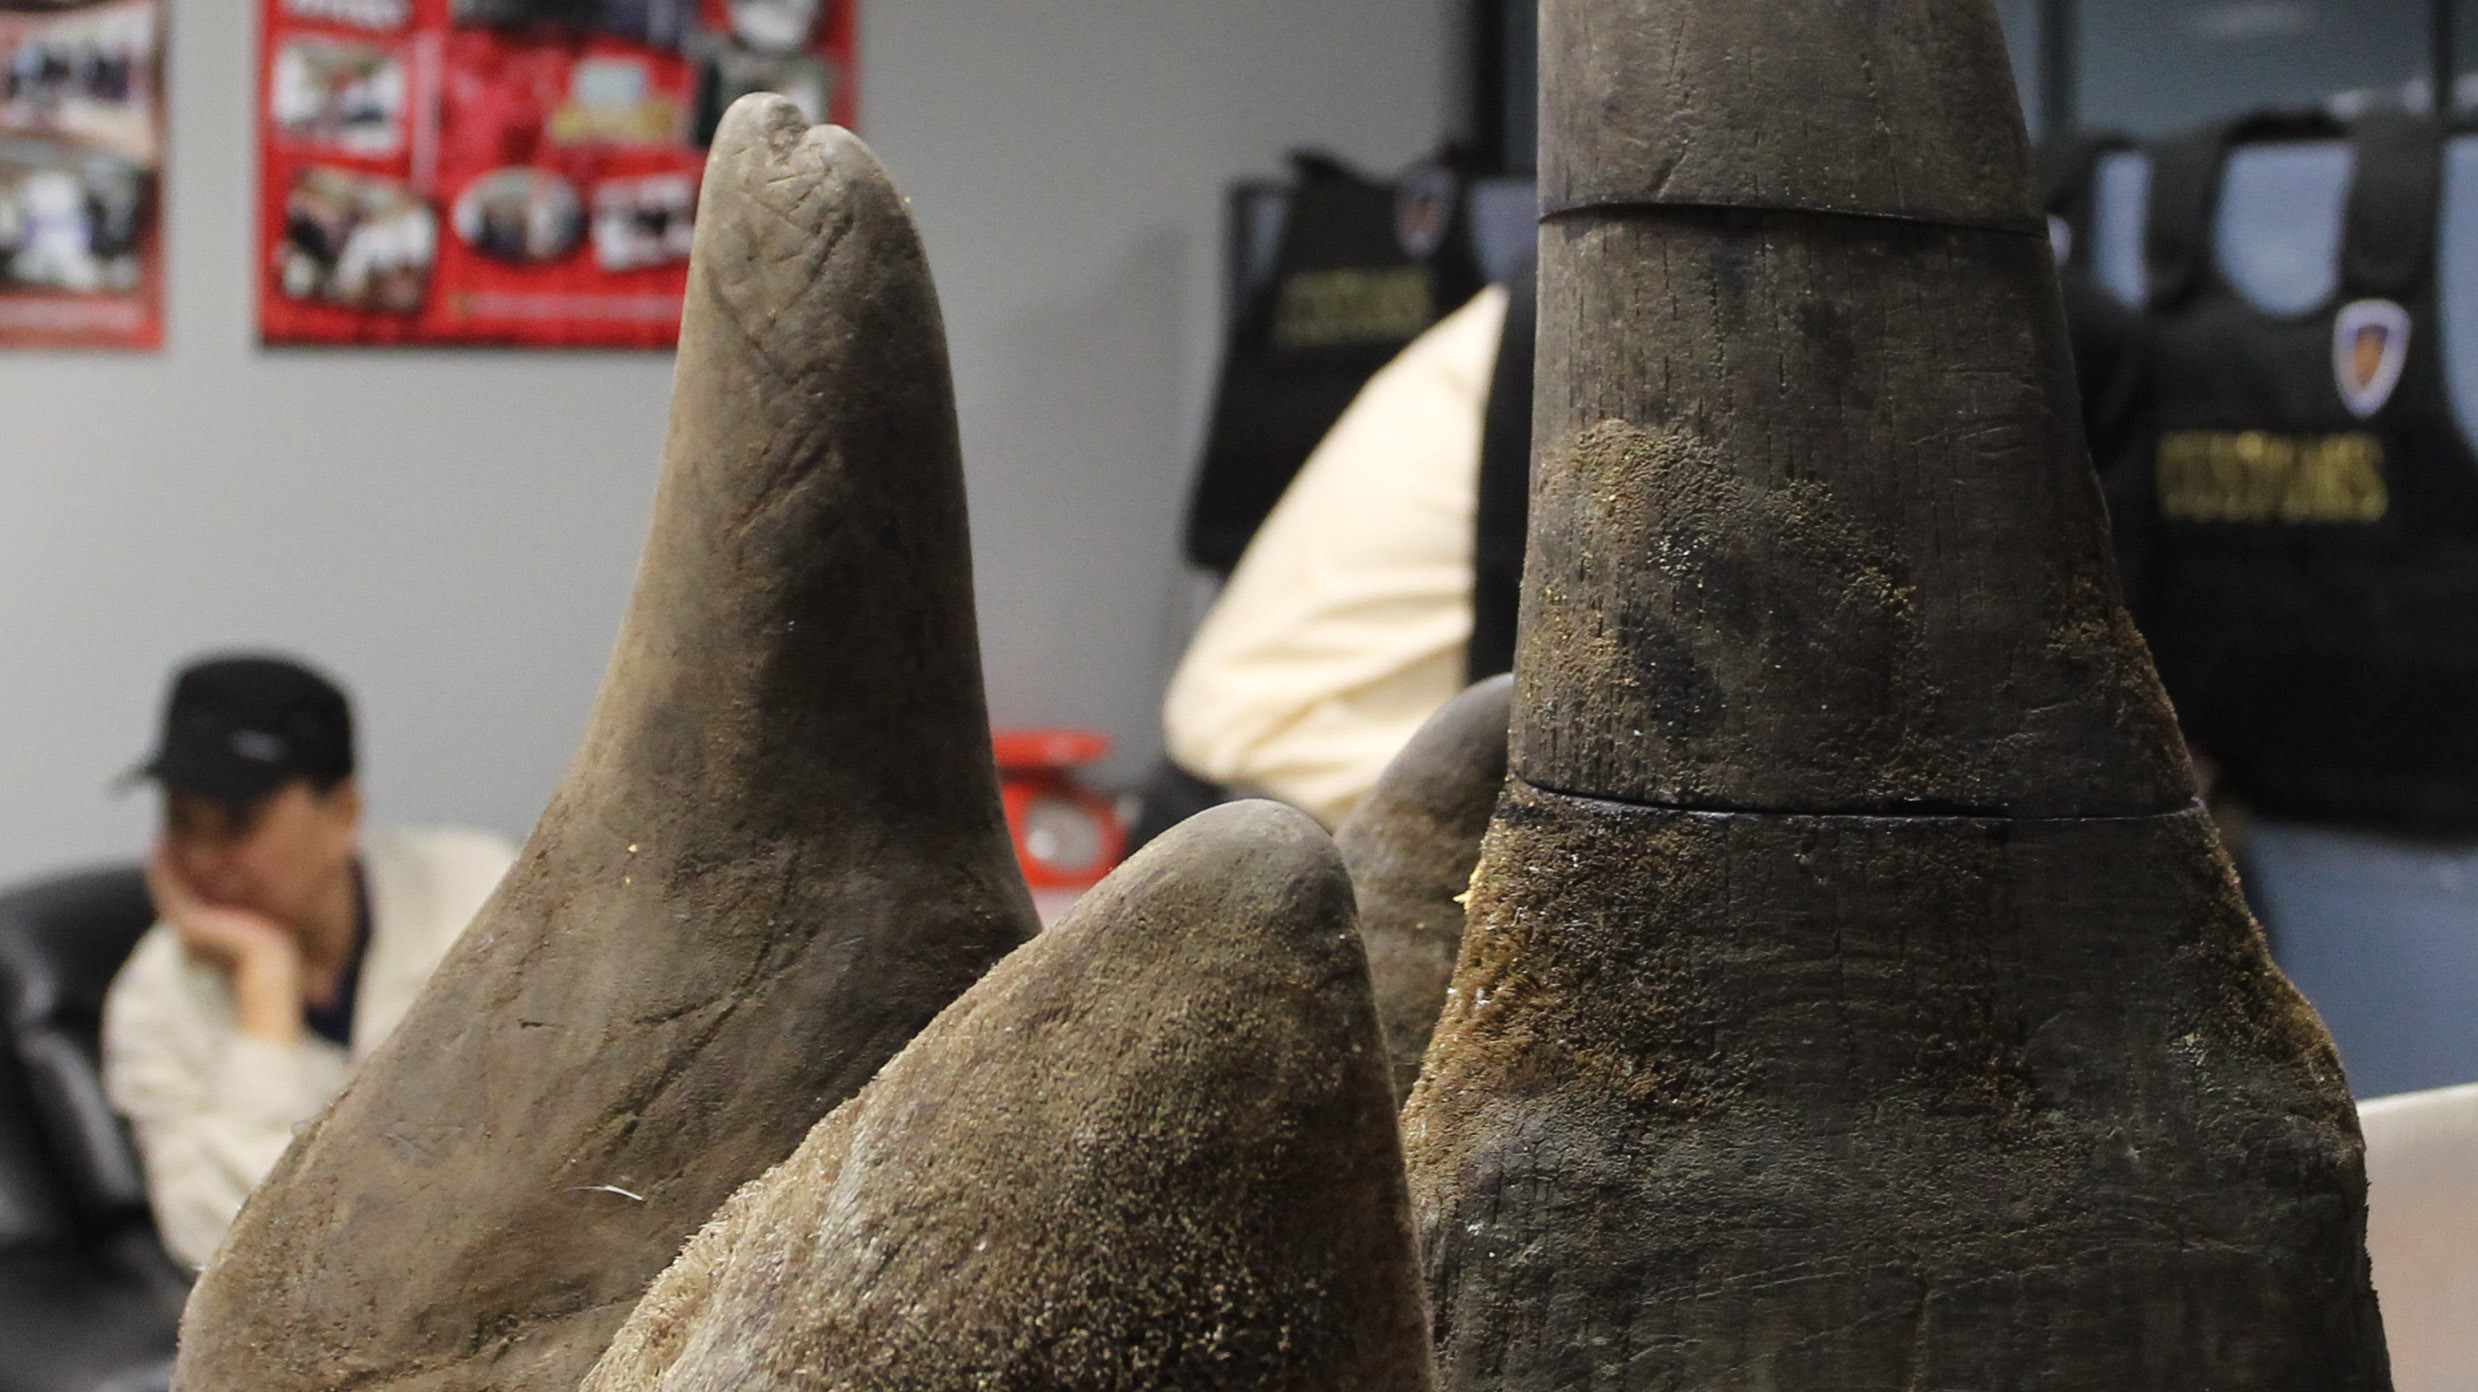 Alleged Vietnamese smuggler Pham Quang Loc, 56, sits behind rhino horns seized at Suvarnabhumi airport in Bangkok on Jan. 6. Rhino horn is seen as a miracle cure-all in Vietnam -- an expensive, medically unproved and illegal product that experts say is devastating the global rhino population.